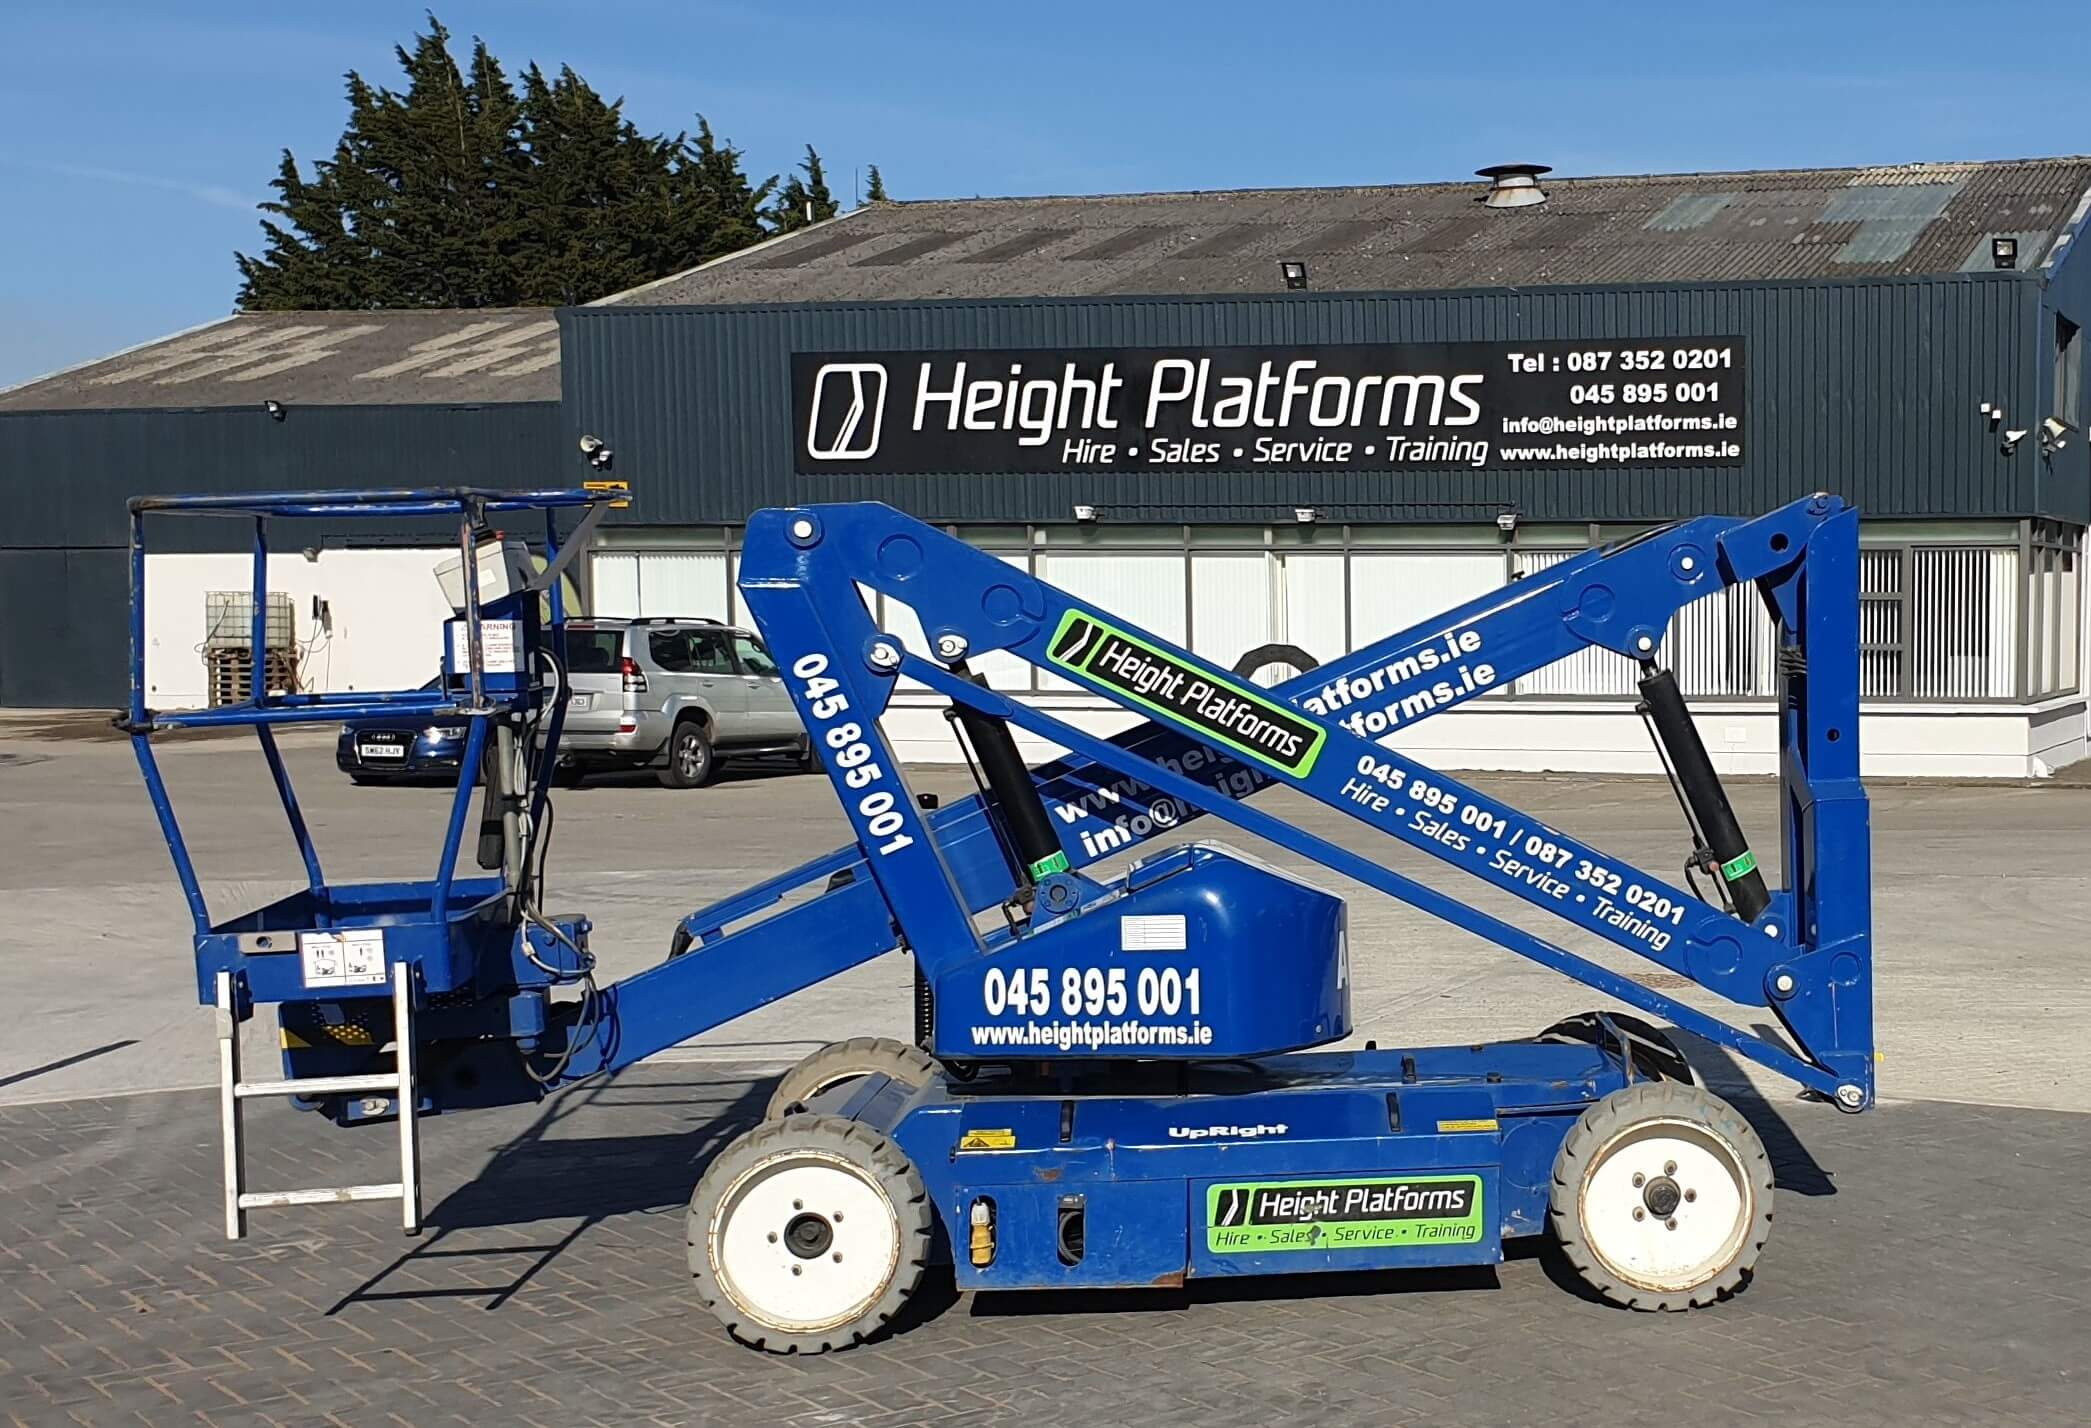 Upright AB38 Battery Articulated Boom Lift for Sale | Access